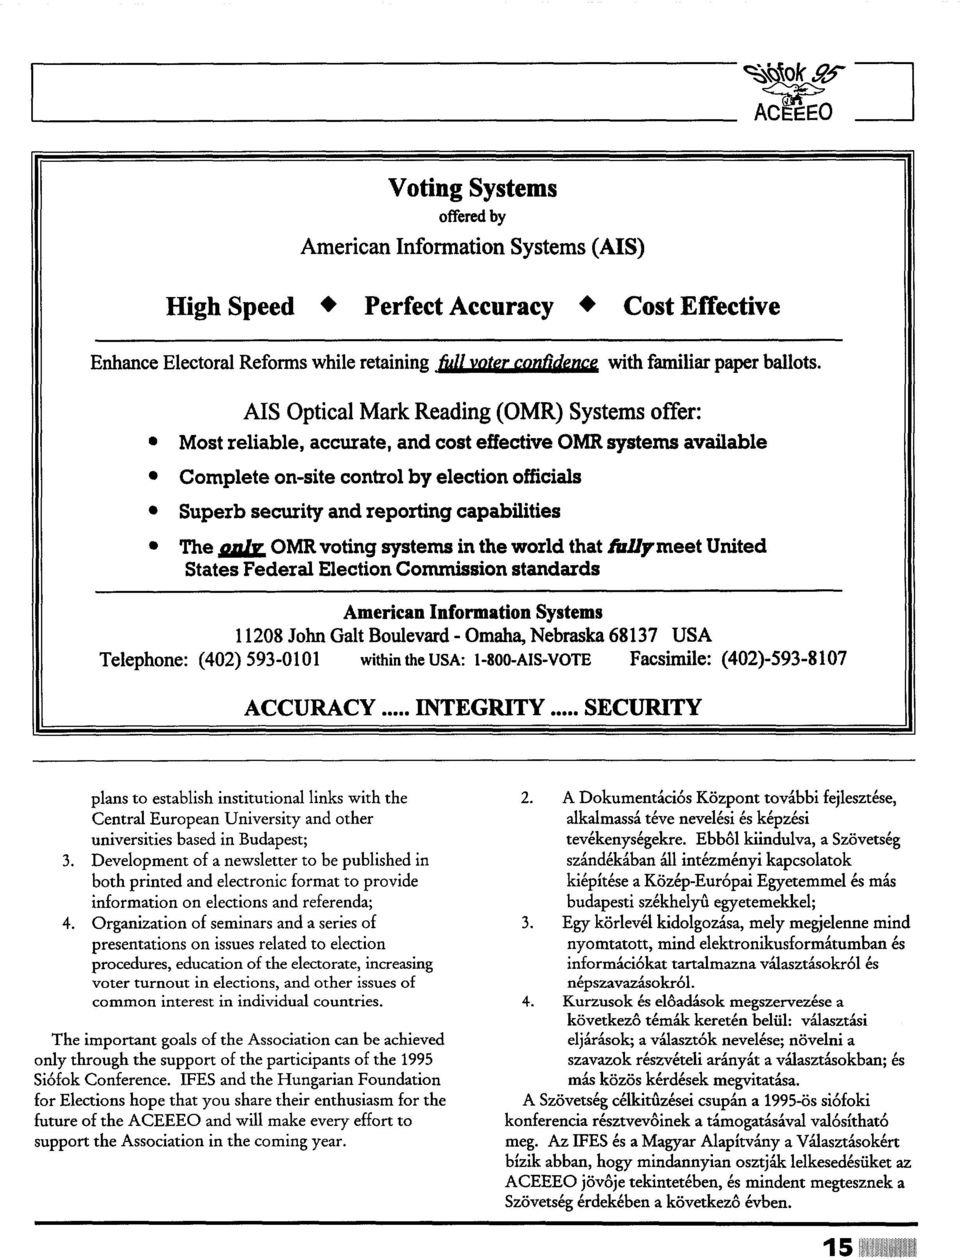 AIS Optical Mark Reading (OMR) Systems offer: Most reliable, accurate, and cost effective OMR systems available Complete on-site control by election officials Superb security and reporting